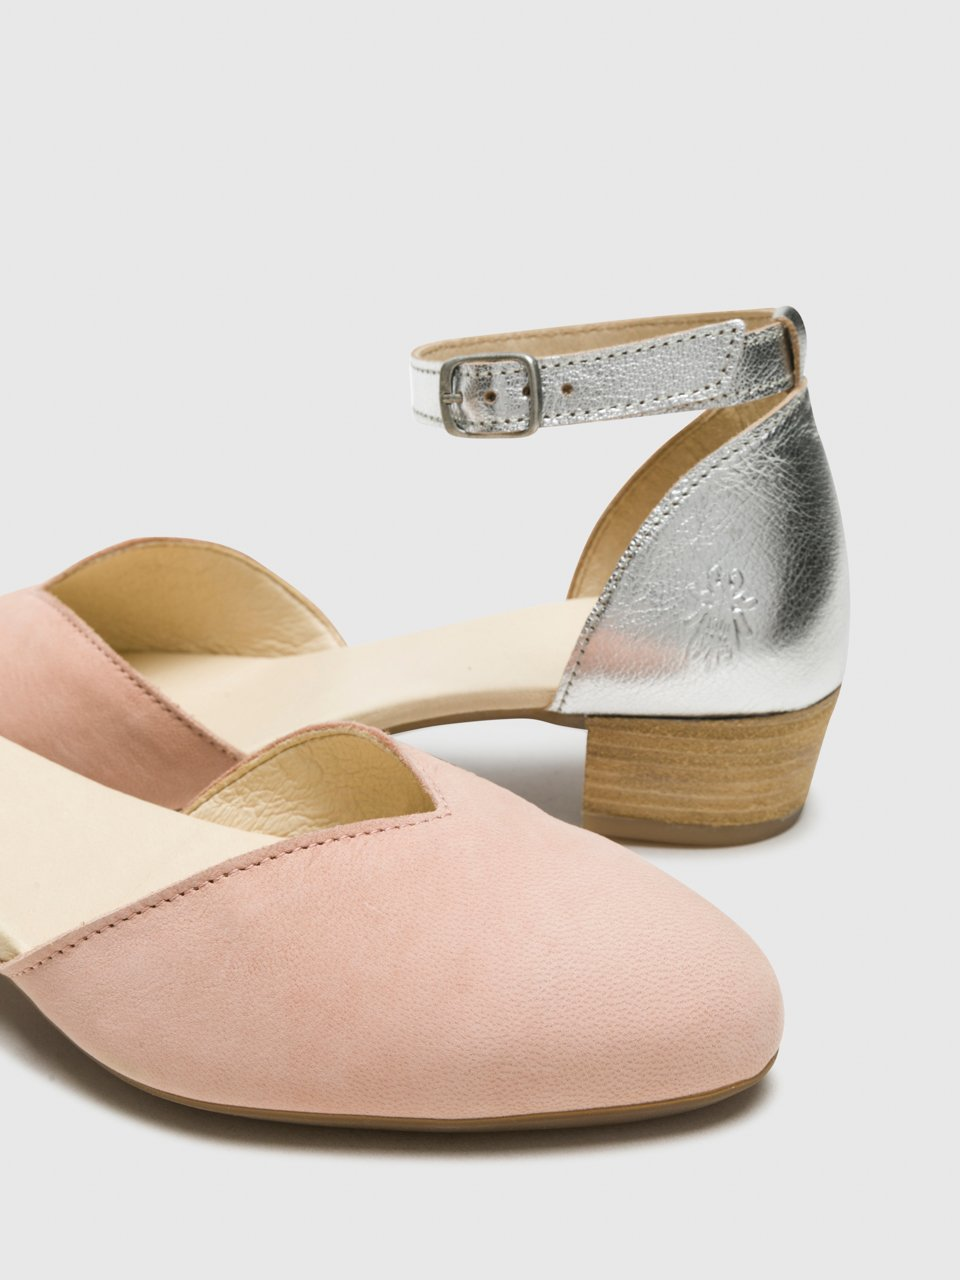 Ankle Strap Sandals LOGI459FLY NUDE PINK/SILVER